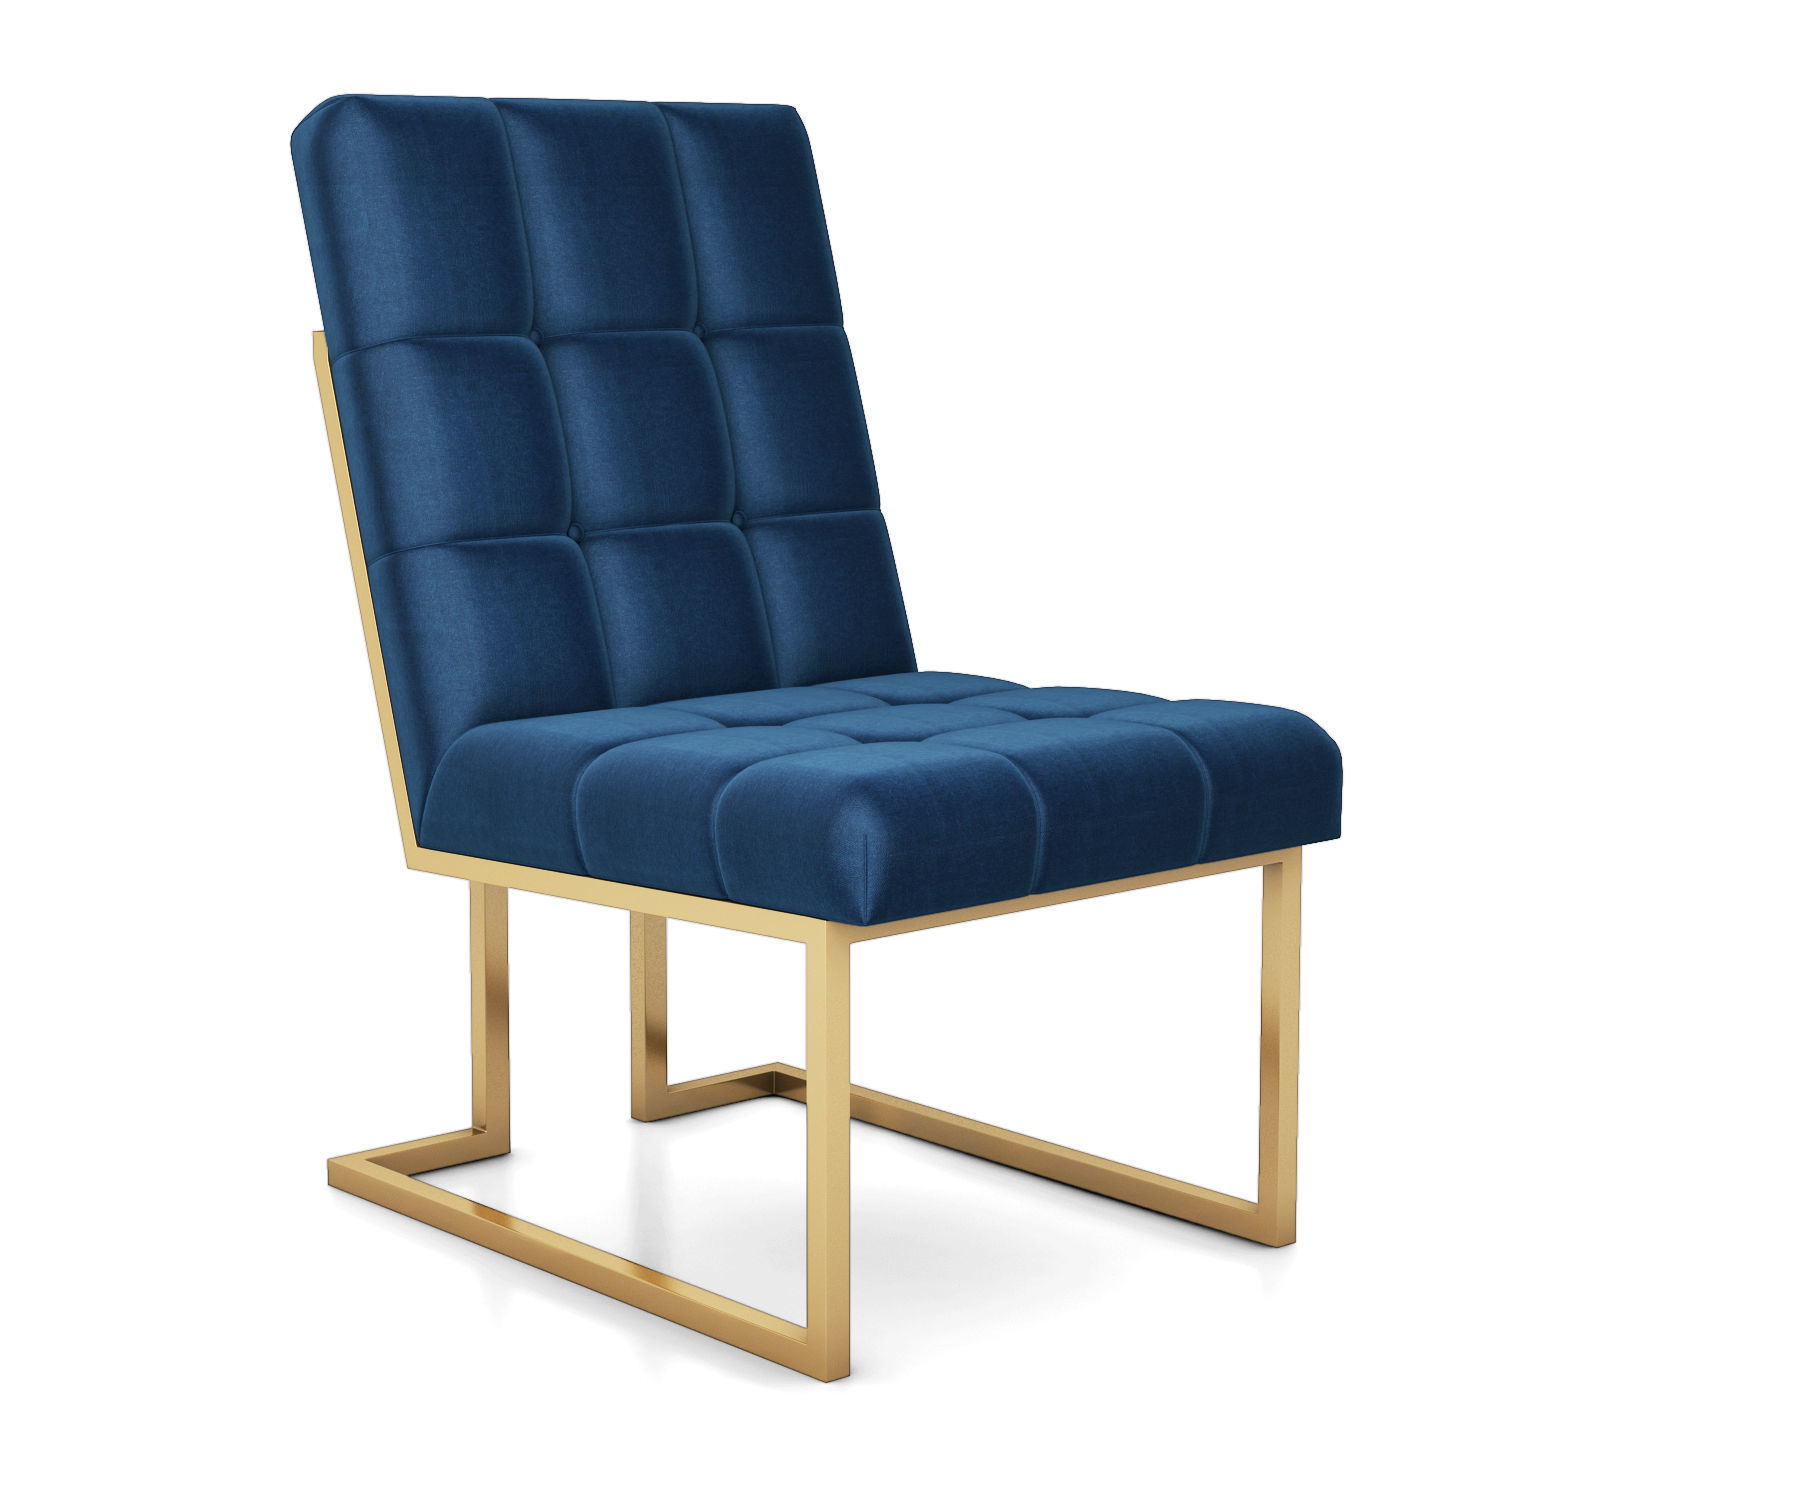 hight resolution of goldfinger navy dining chair by jonathan adler 3d model